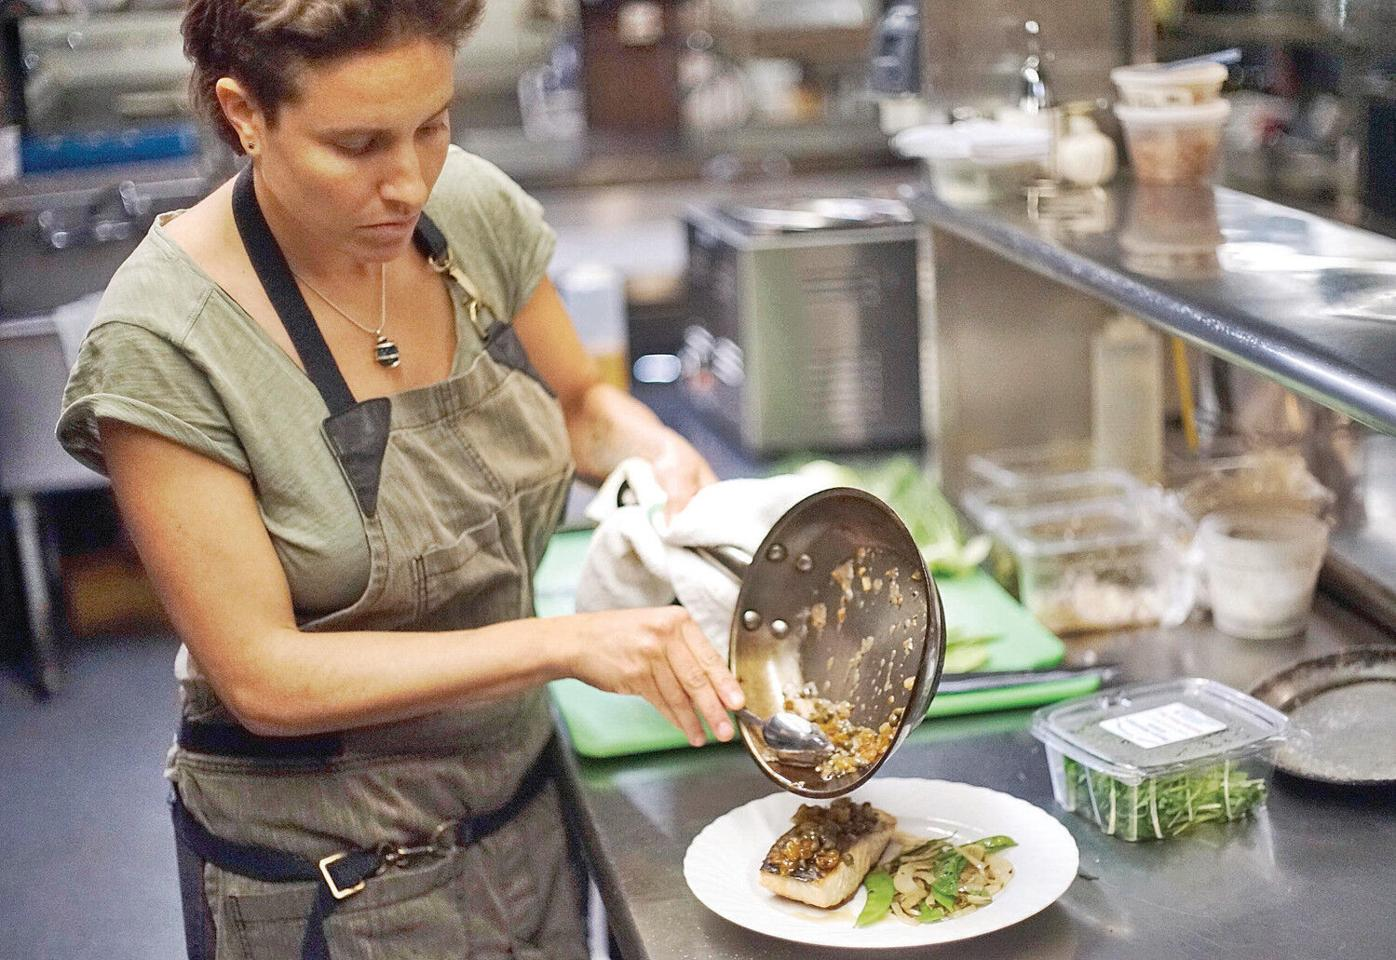 A new face in The Stagecoach Tavern kitchen